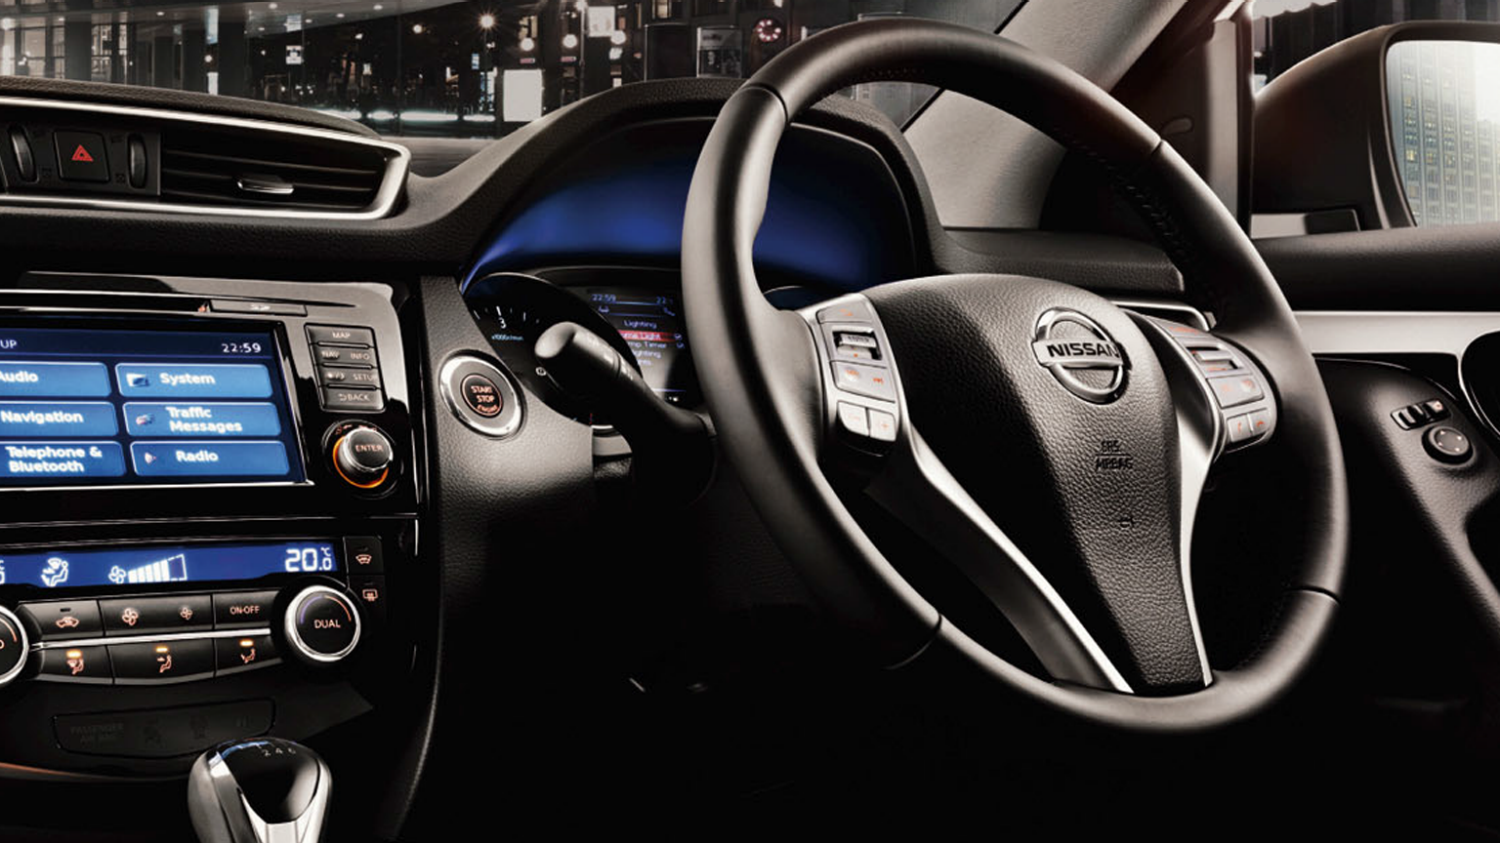 Nissan Qashqai | Electronically-assisted steering